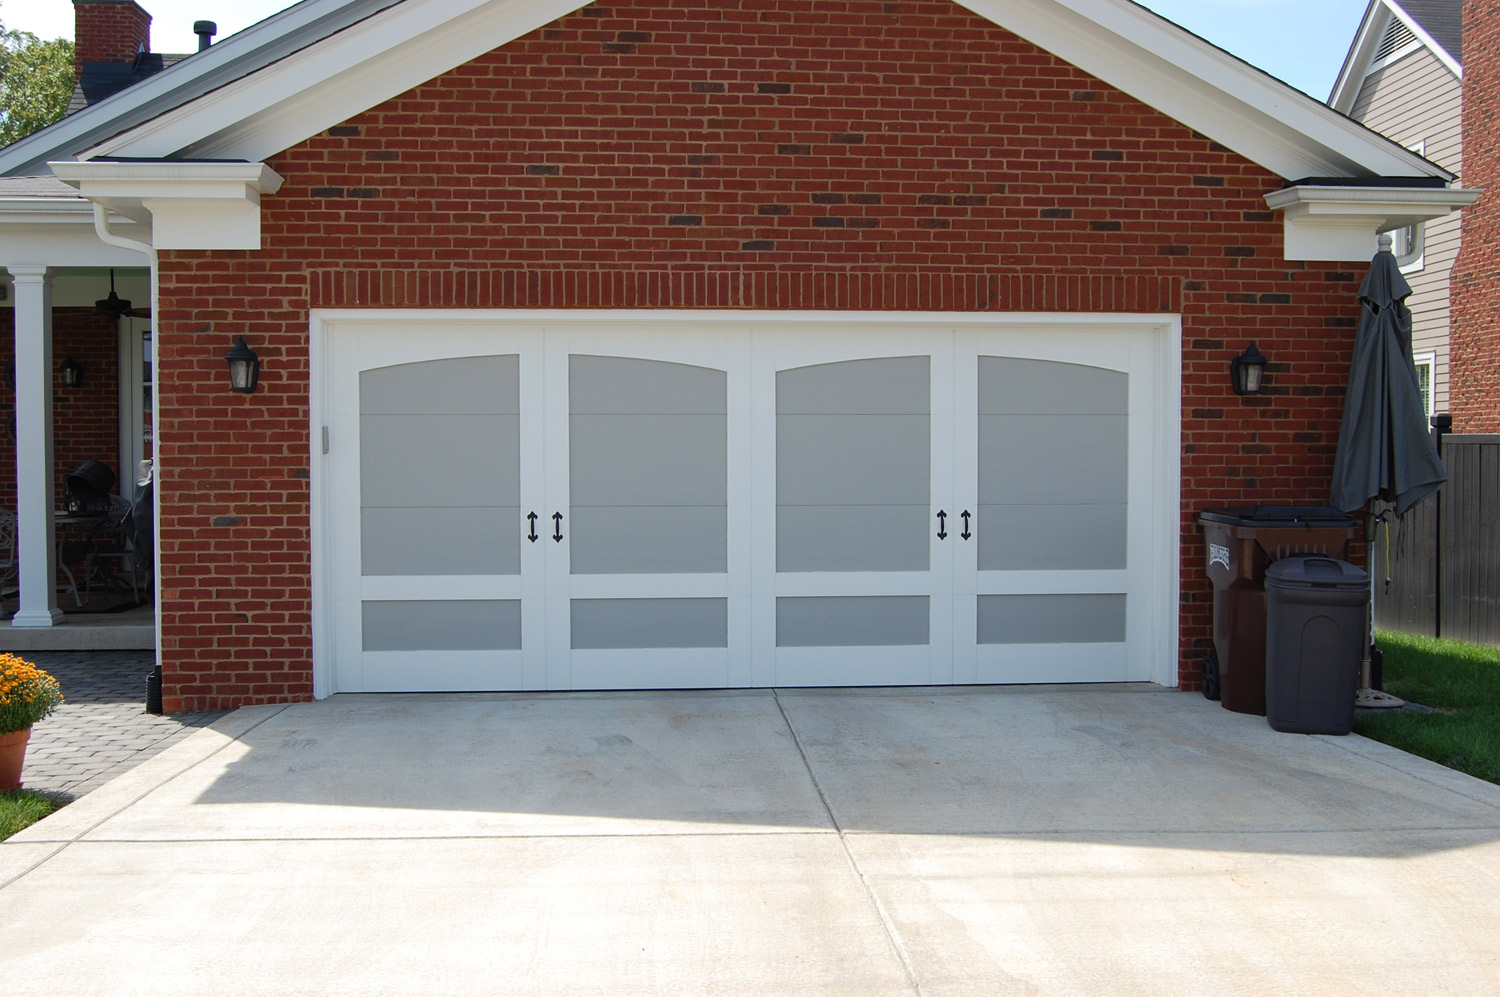 Garage Doors By Cunningham Door & Window. Chi Garage Door Prices. Remote Garage Door Opener. Garage Floors Tiles. How Much To Add A Garage. Garage Organization Tips. Sliding Screen Door Track Replacement. Cupboard Door. Interior Door Repair